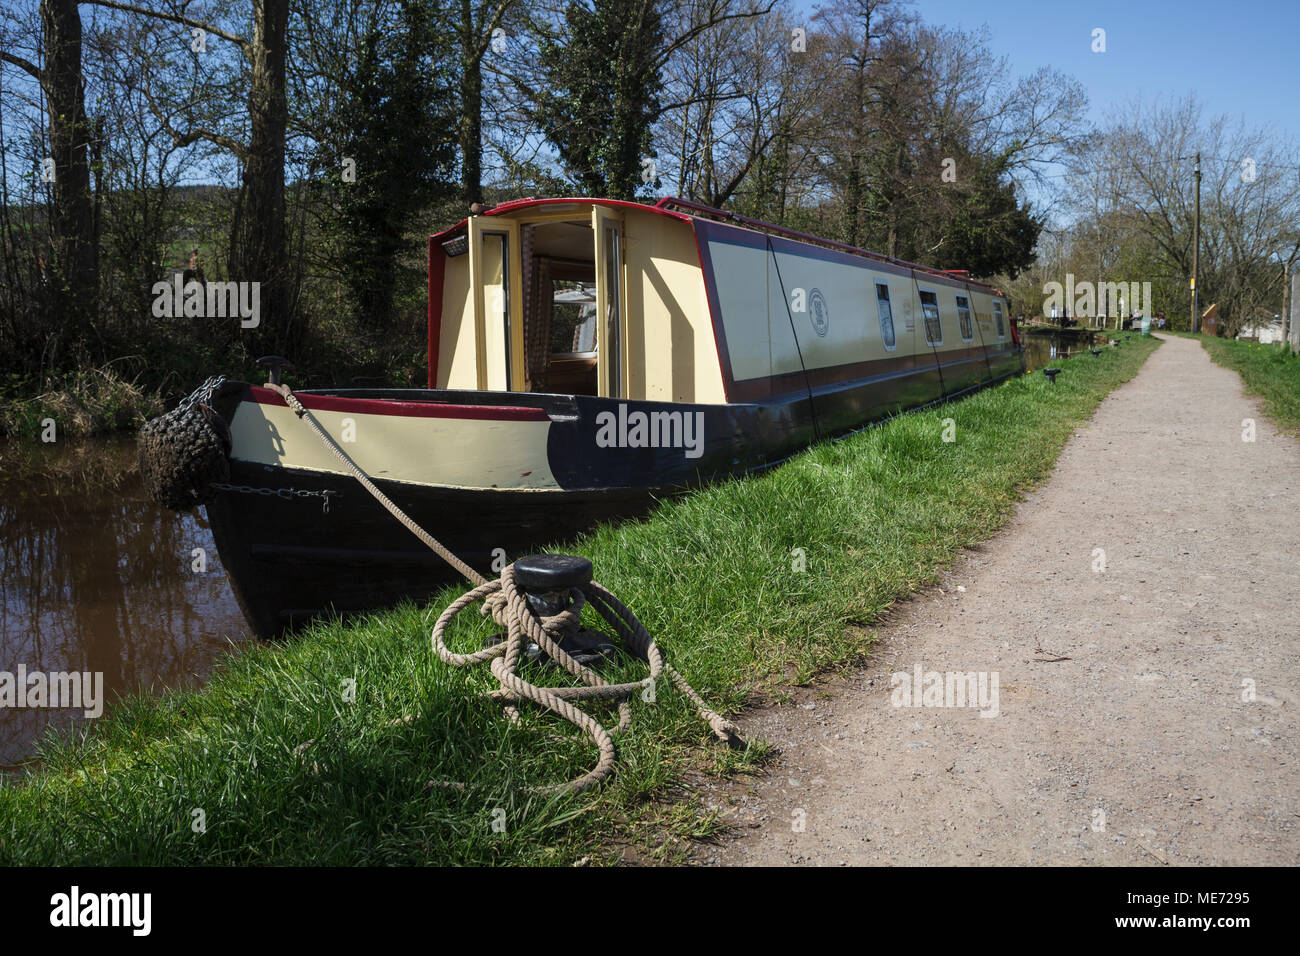 Canal Boat on the Brecon Canal at Talybont on Usk, South Wales - Stock Image